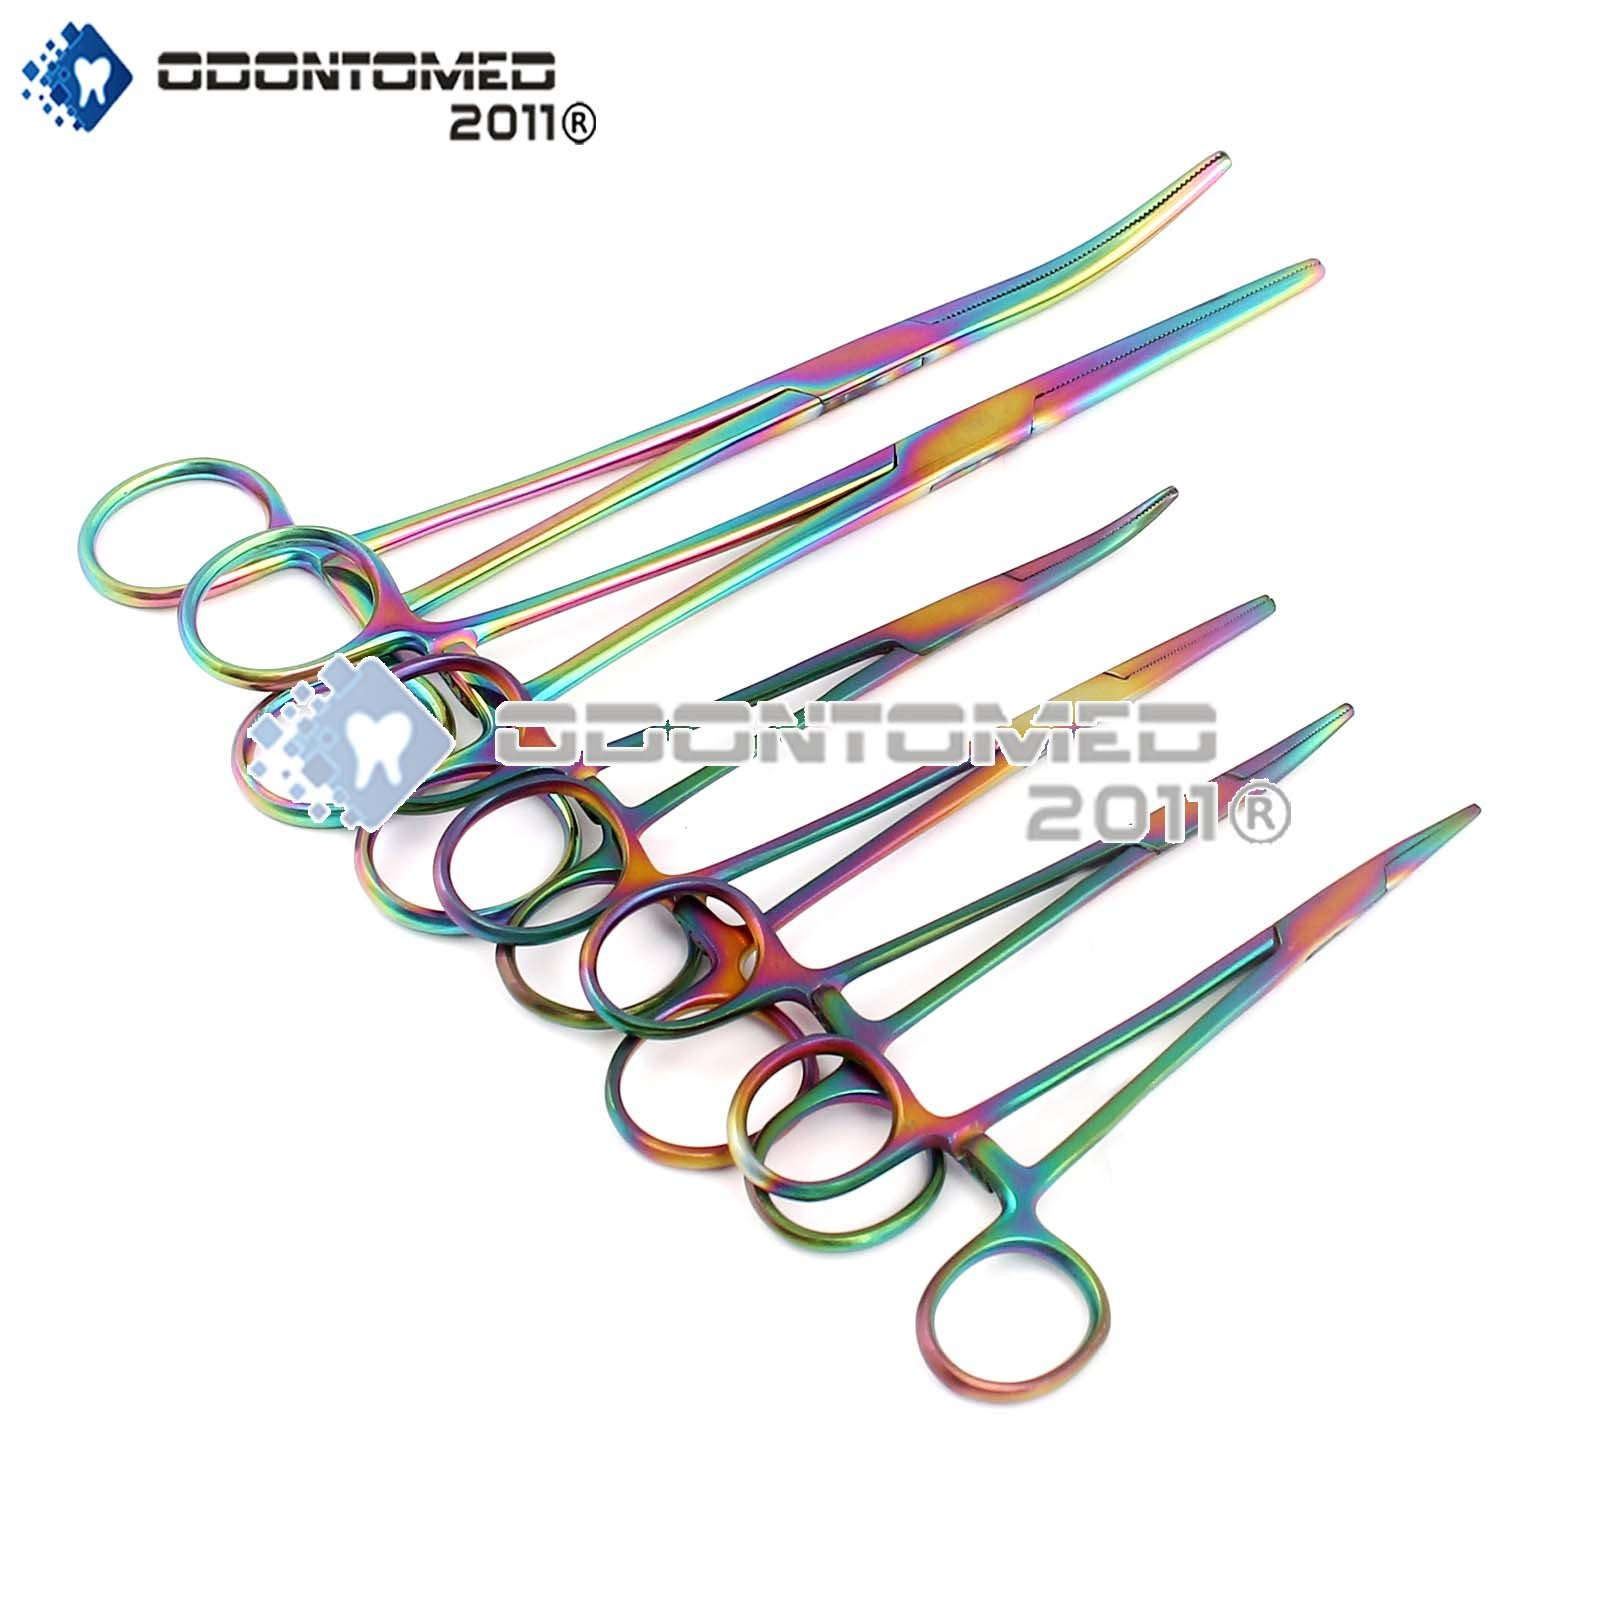 OdontoMed2011 Ultimate Hemostat Set Multi Color, 6 Piece Ideal for Hobby Tools, Electronics, Fishing and Taxidermy Rainbow Color